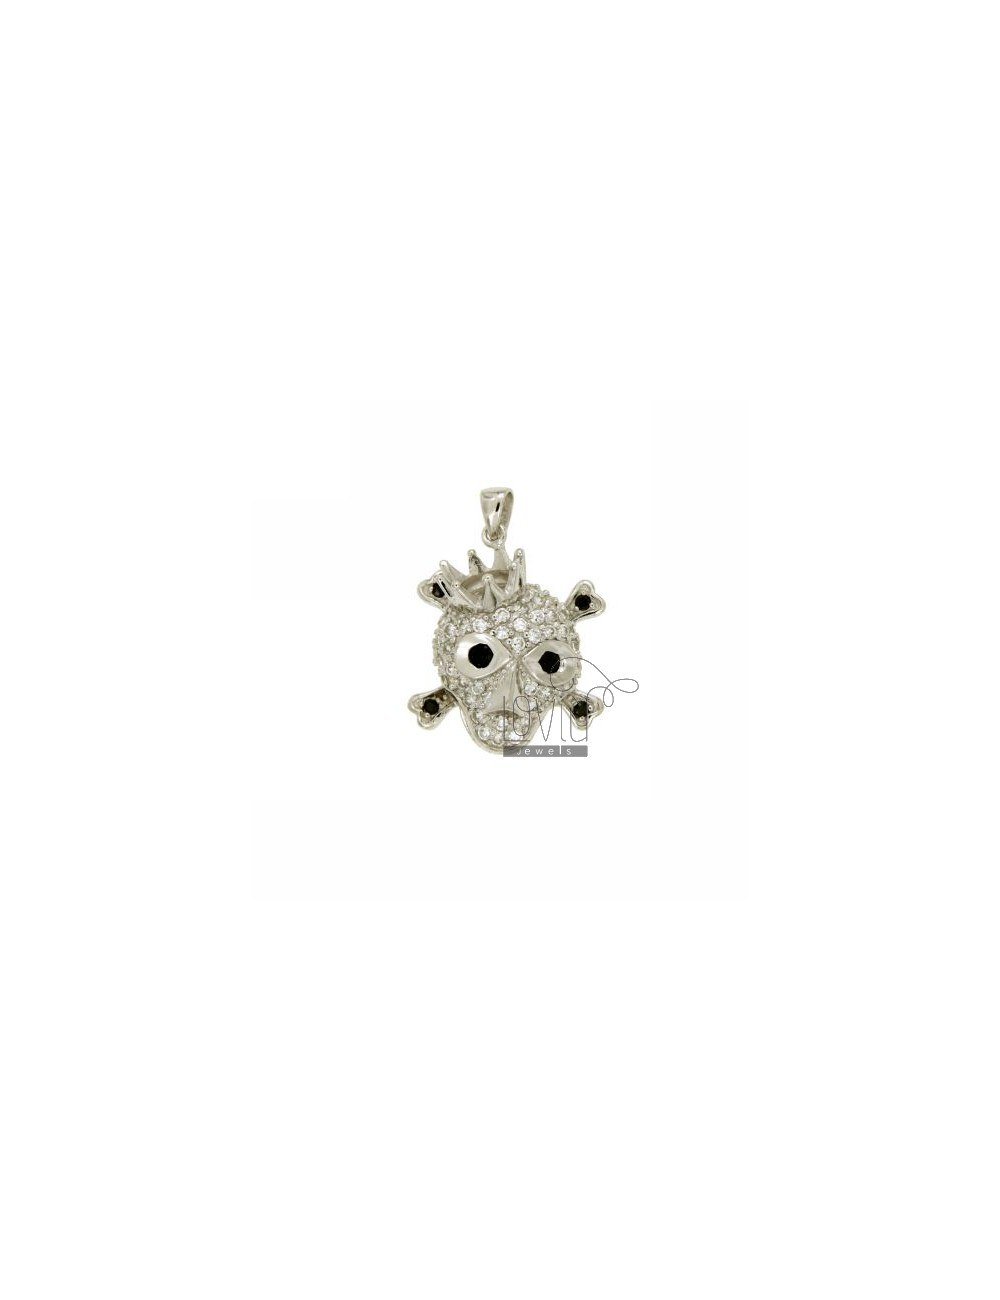 PENDANT SKULL KING 24x19 MM IN AG TIT 925 ‰ AND ZIRCONIA